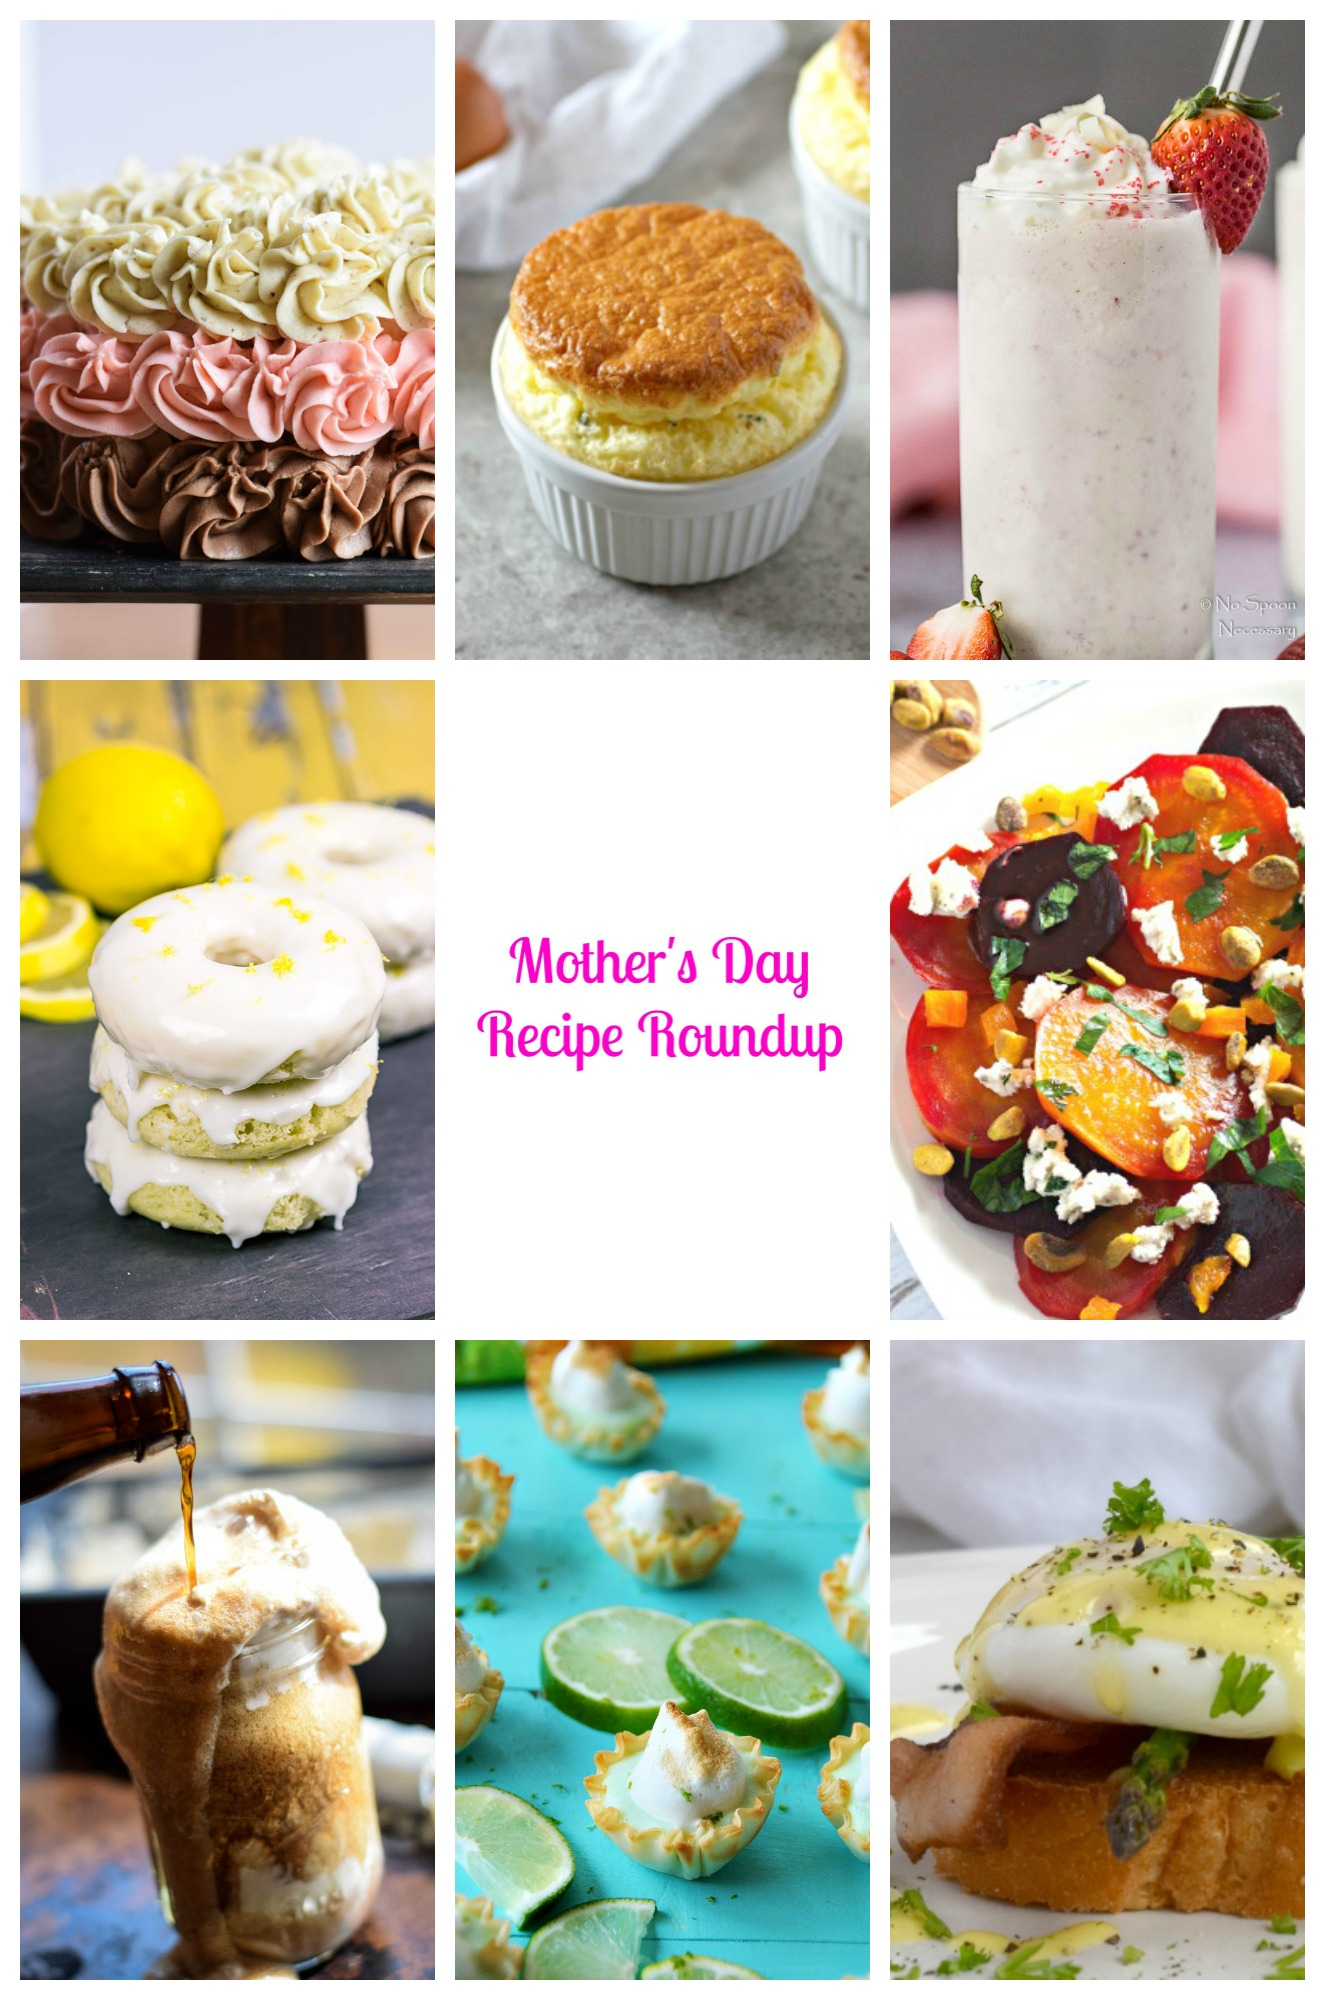 Mother's Day Recipe Roundup